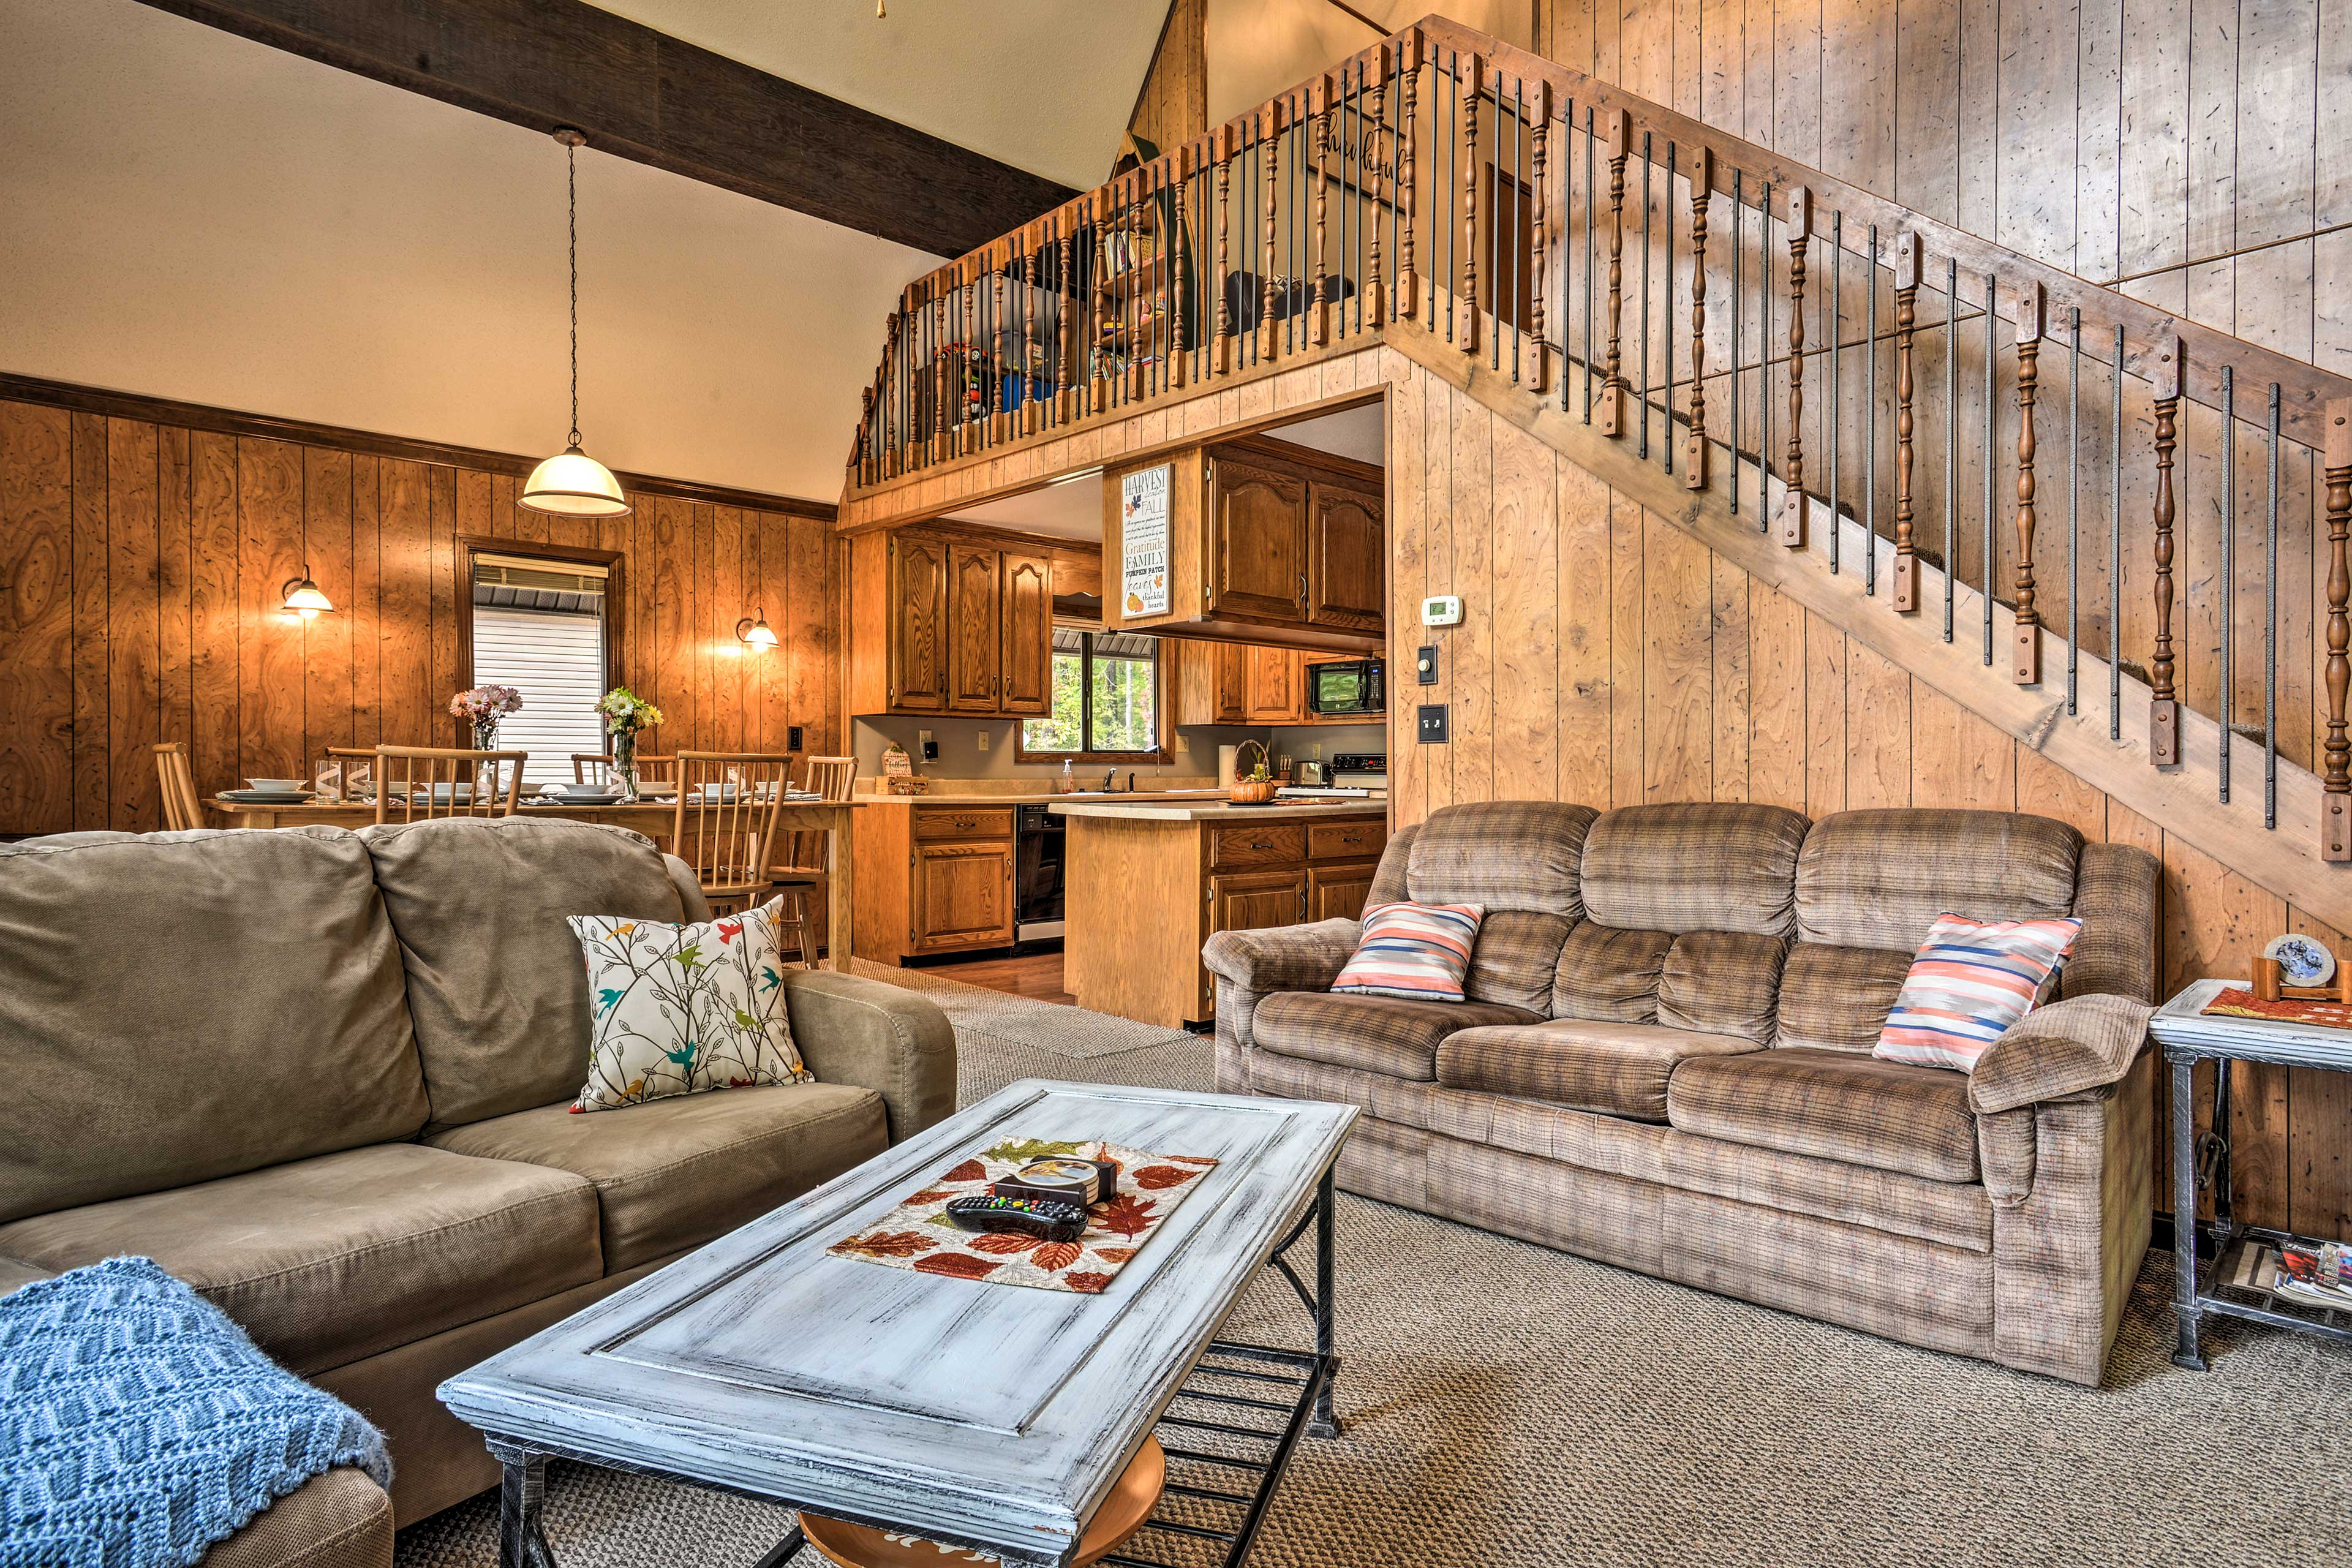 You're sure to love the rustic, cabin-like interior!